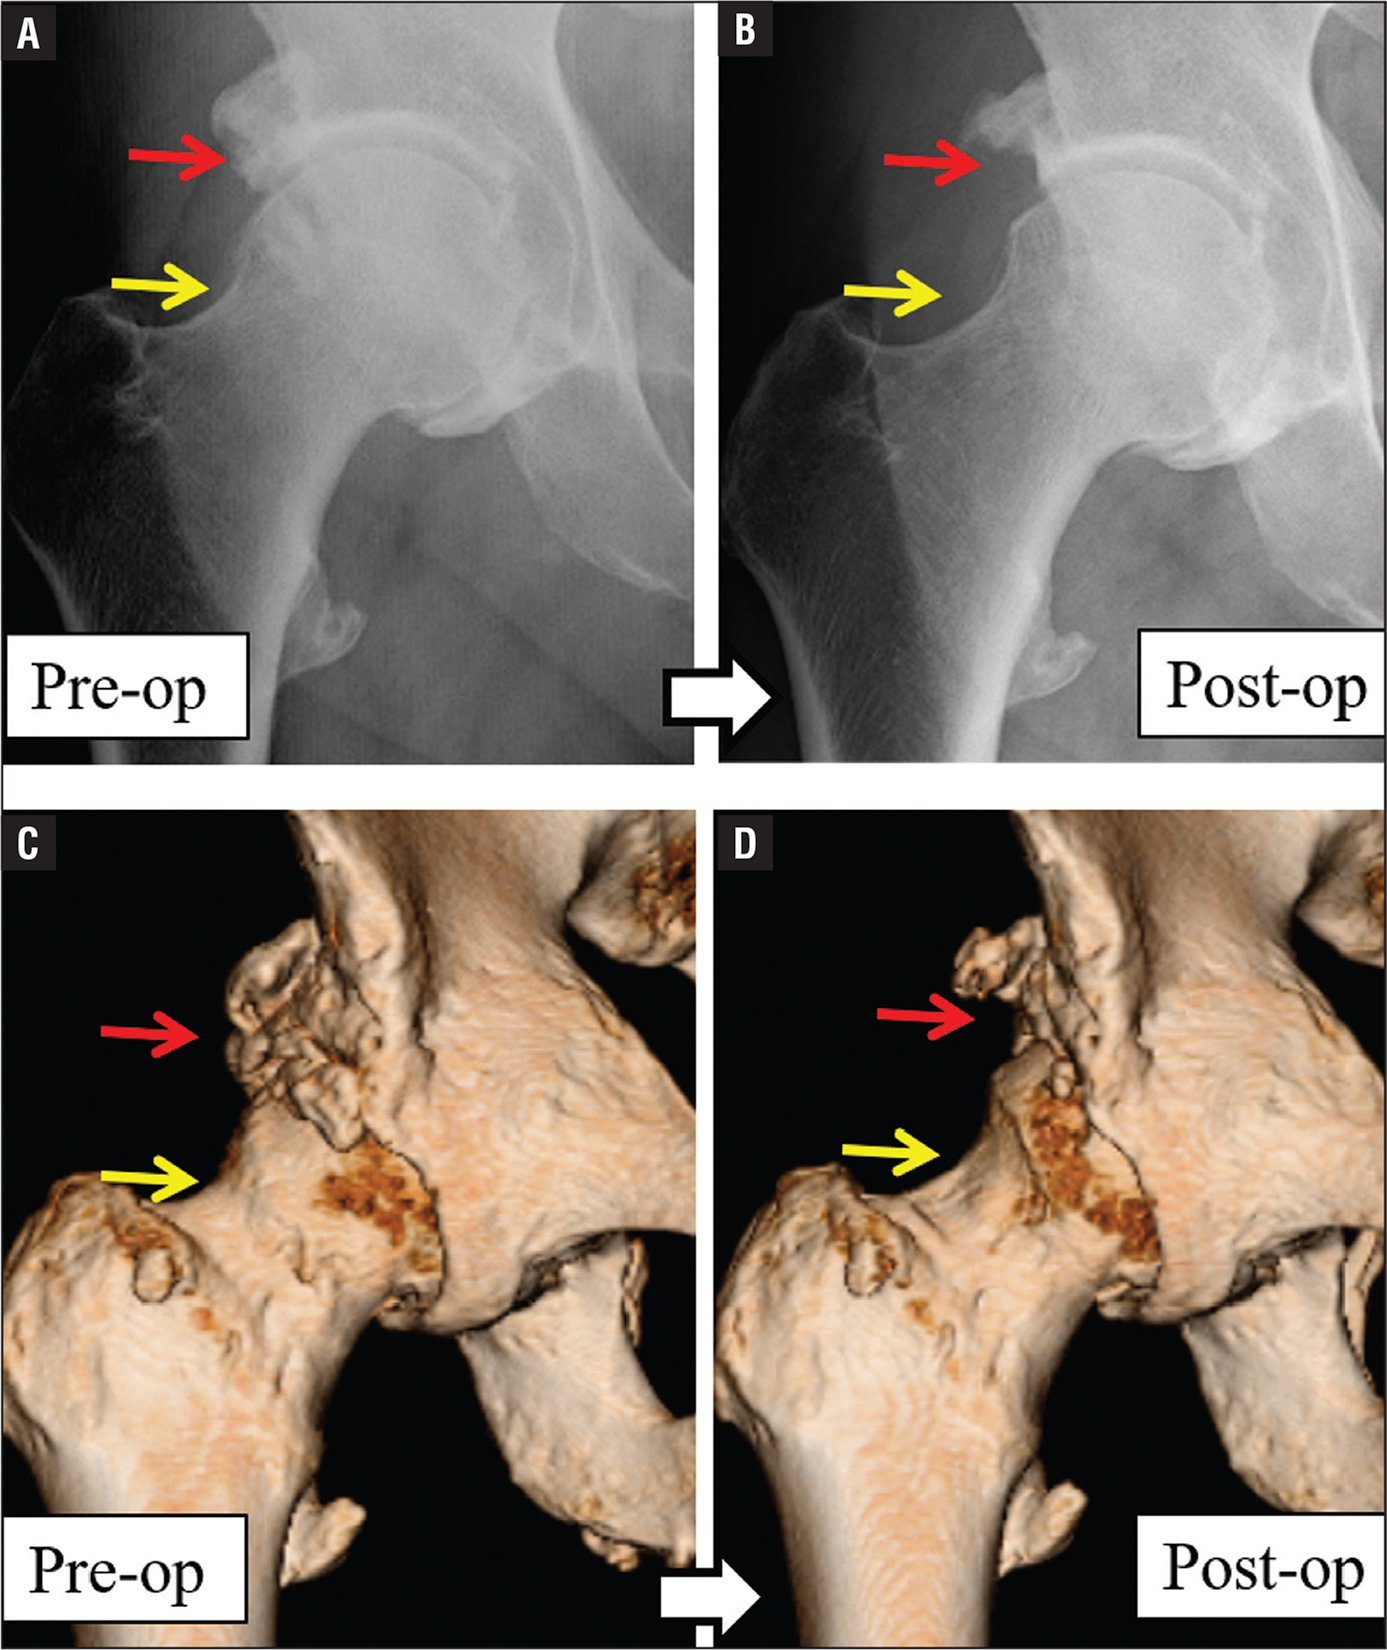 Pre- (A) and postoperative (B) radiographs and pre- (C) and postoperative (D) 3-dimensional computed tomography scans of diffuse idiopathic skeletal hyperostosis. Preoperatively, periarticular hyperostosis abnormally surrounded the femoral heads. Ossification was also seen at the attachment site of the iliopsoas muscle and the rectus femoris muscle. Arthroscopically, the anterosuperior excessive rim was totally trimmed and the obvious cam lesion was resected to relieve impingement.